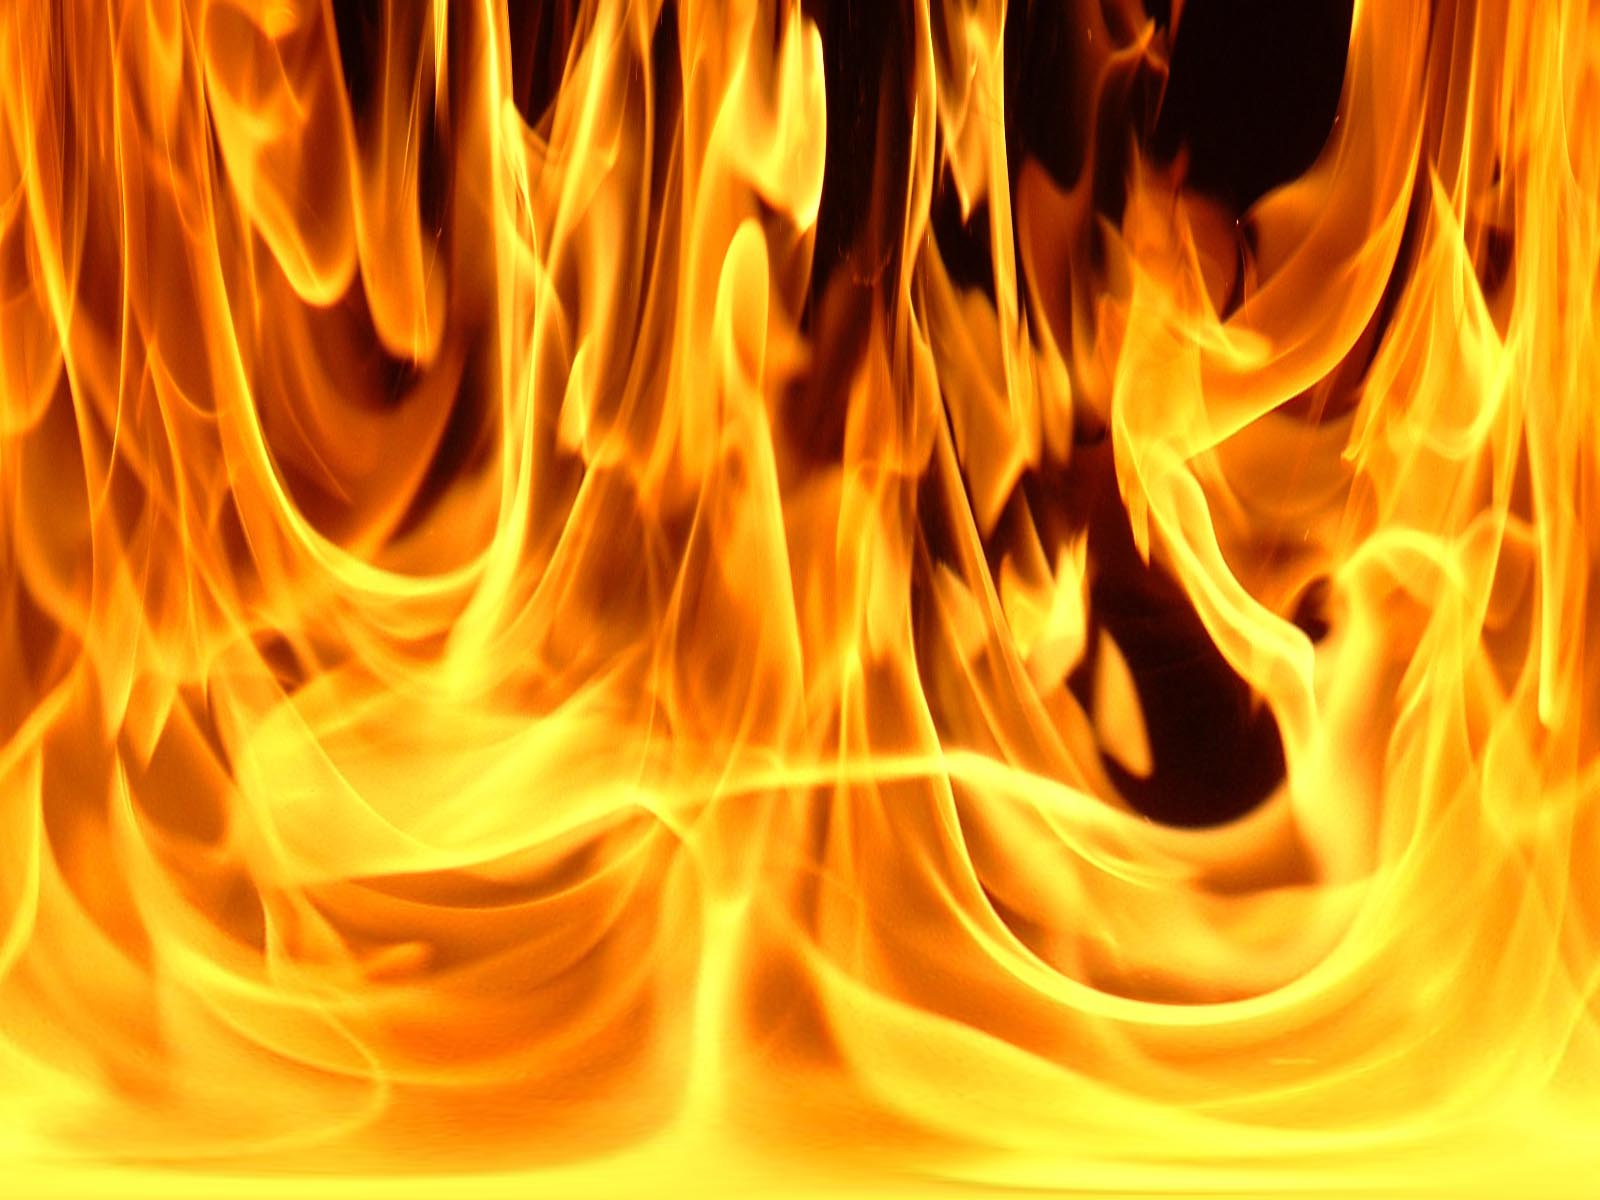 15 Fire Heat Cool Fonts Images